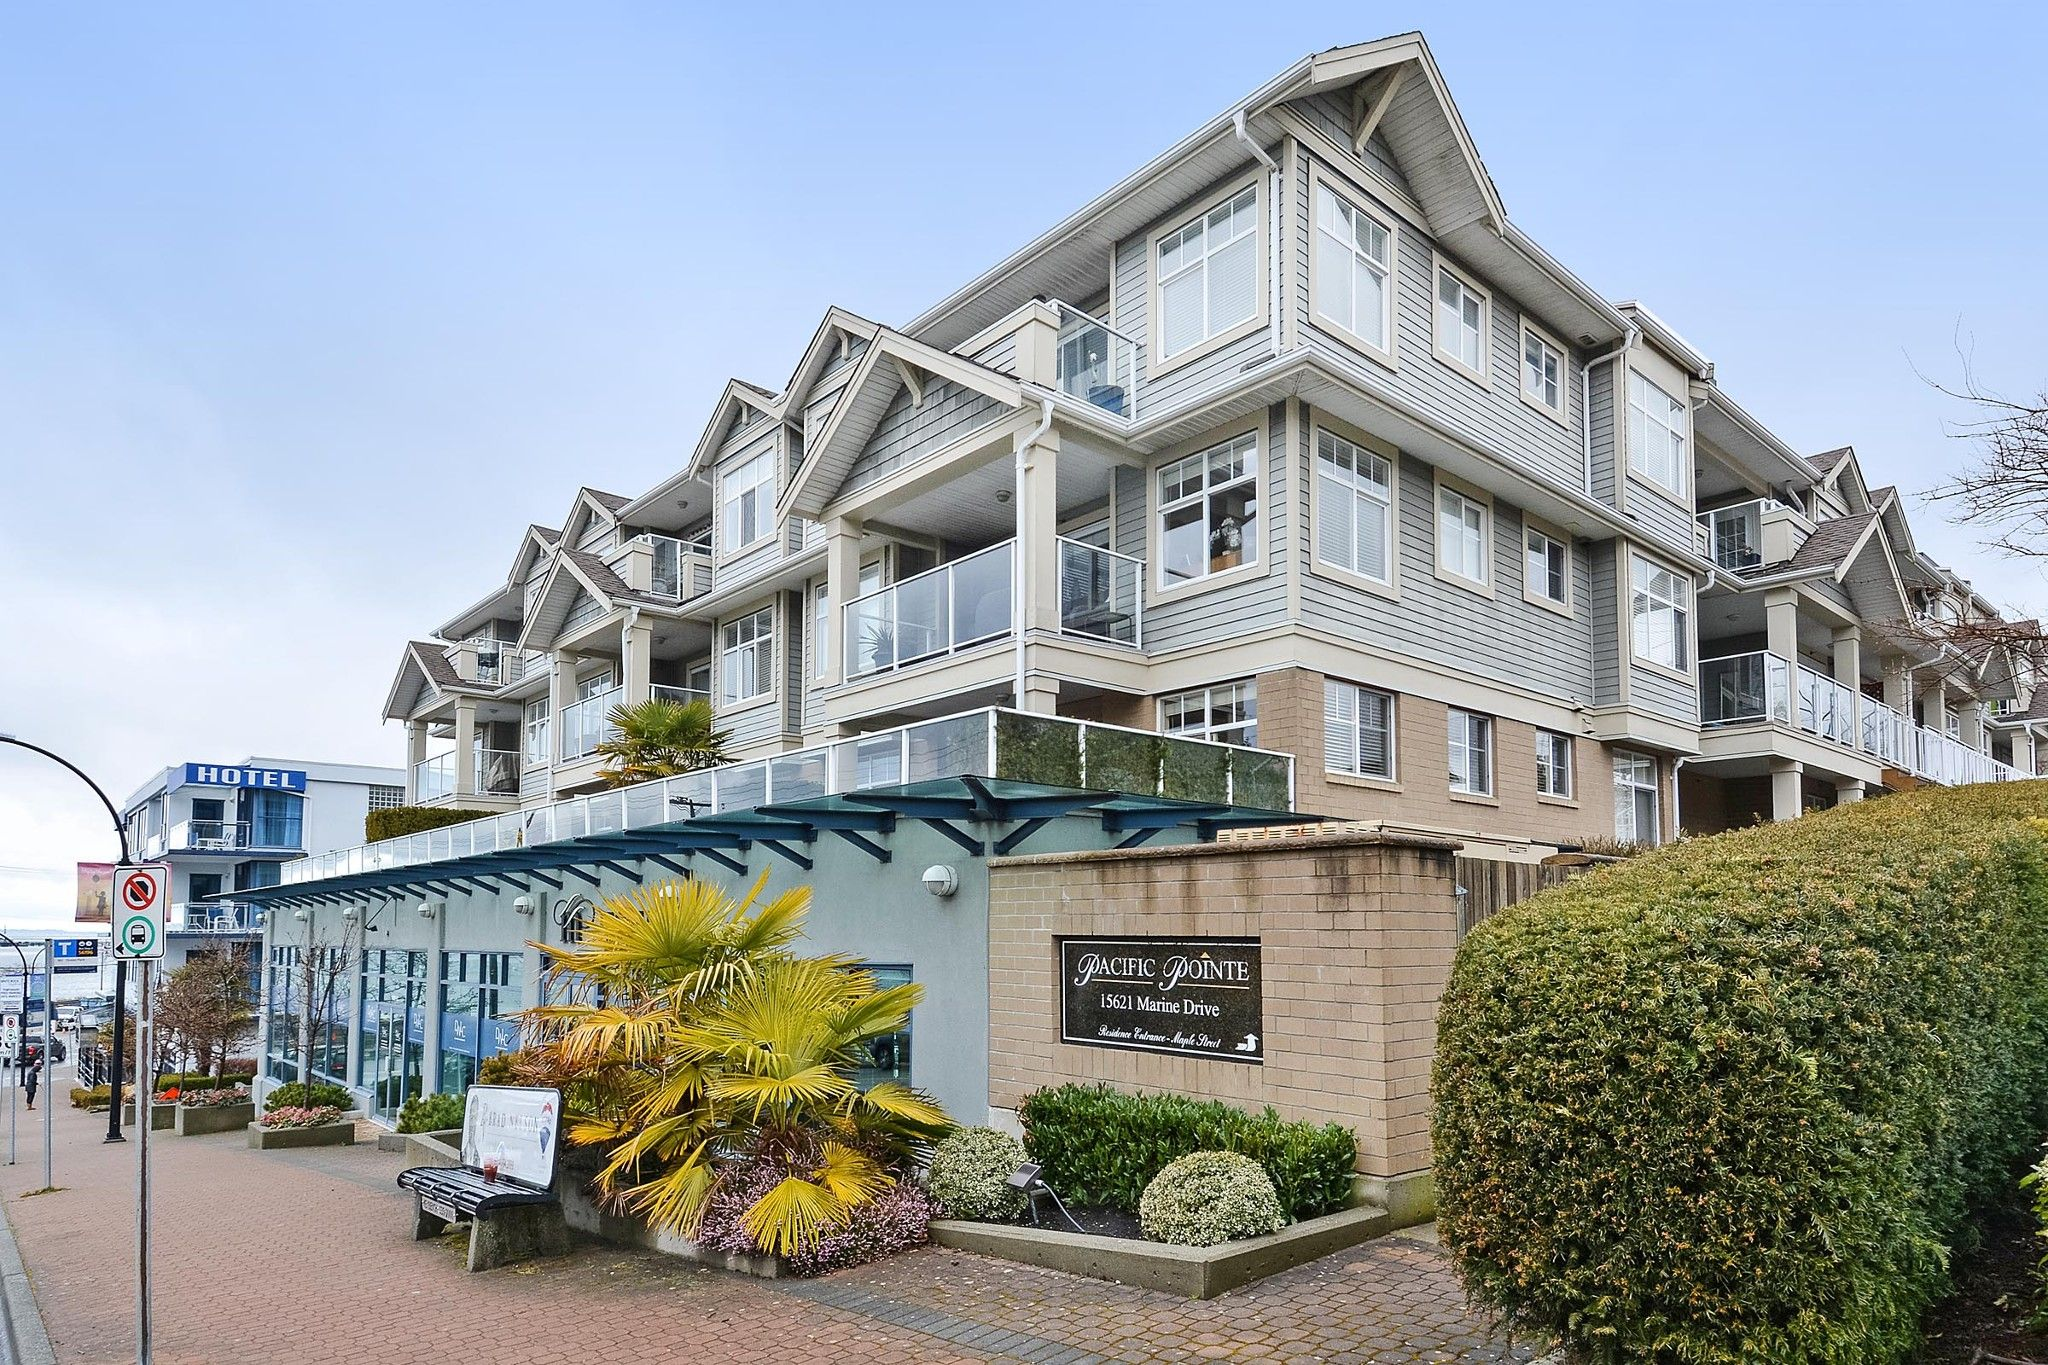 """Main Photo: 110 15621 MARINE Drive: White Rock Condo for sale in """"PACIFIC POINT"""" (South Surrey White Rock)  : MLS®# R2348468"""